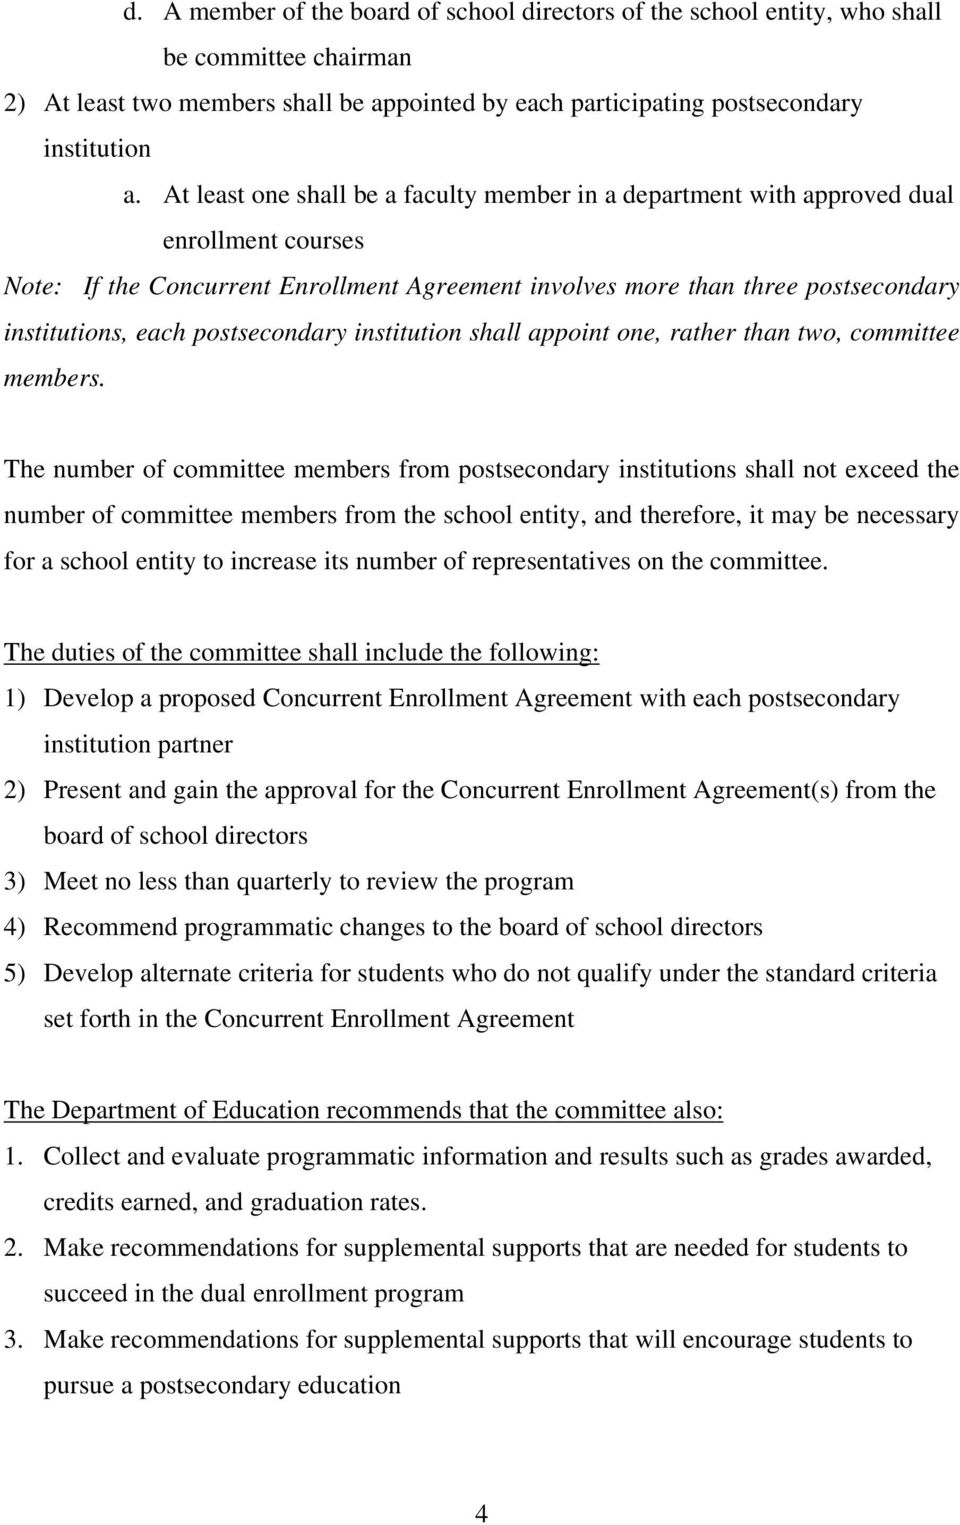 postsecondary institution shall appoint one, rather than two, committee members.